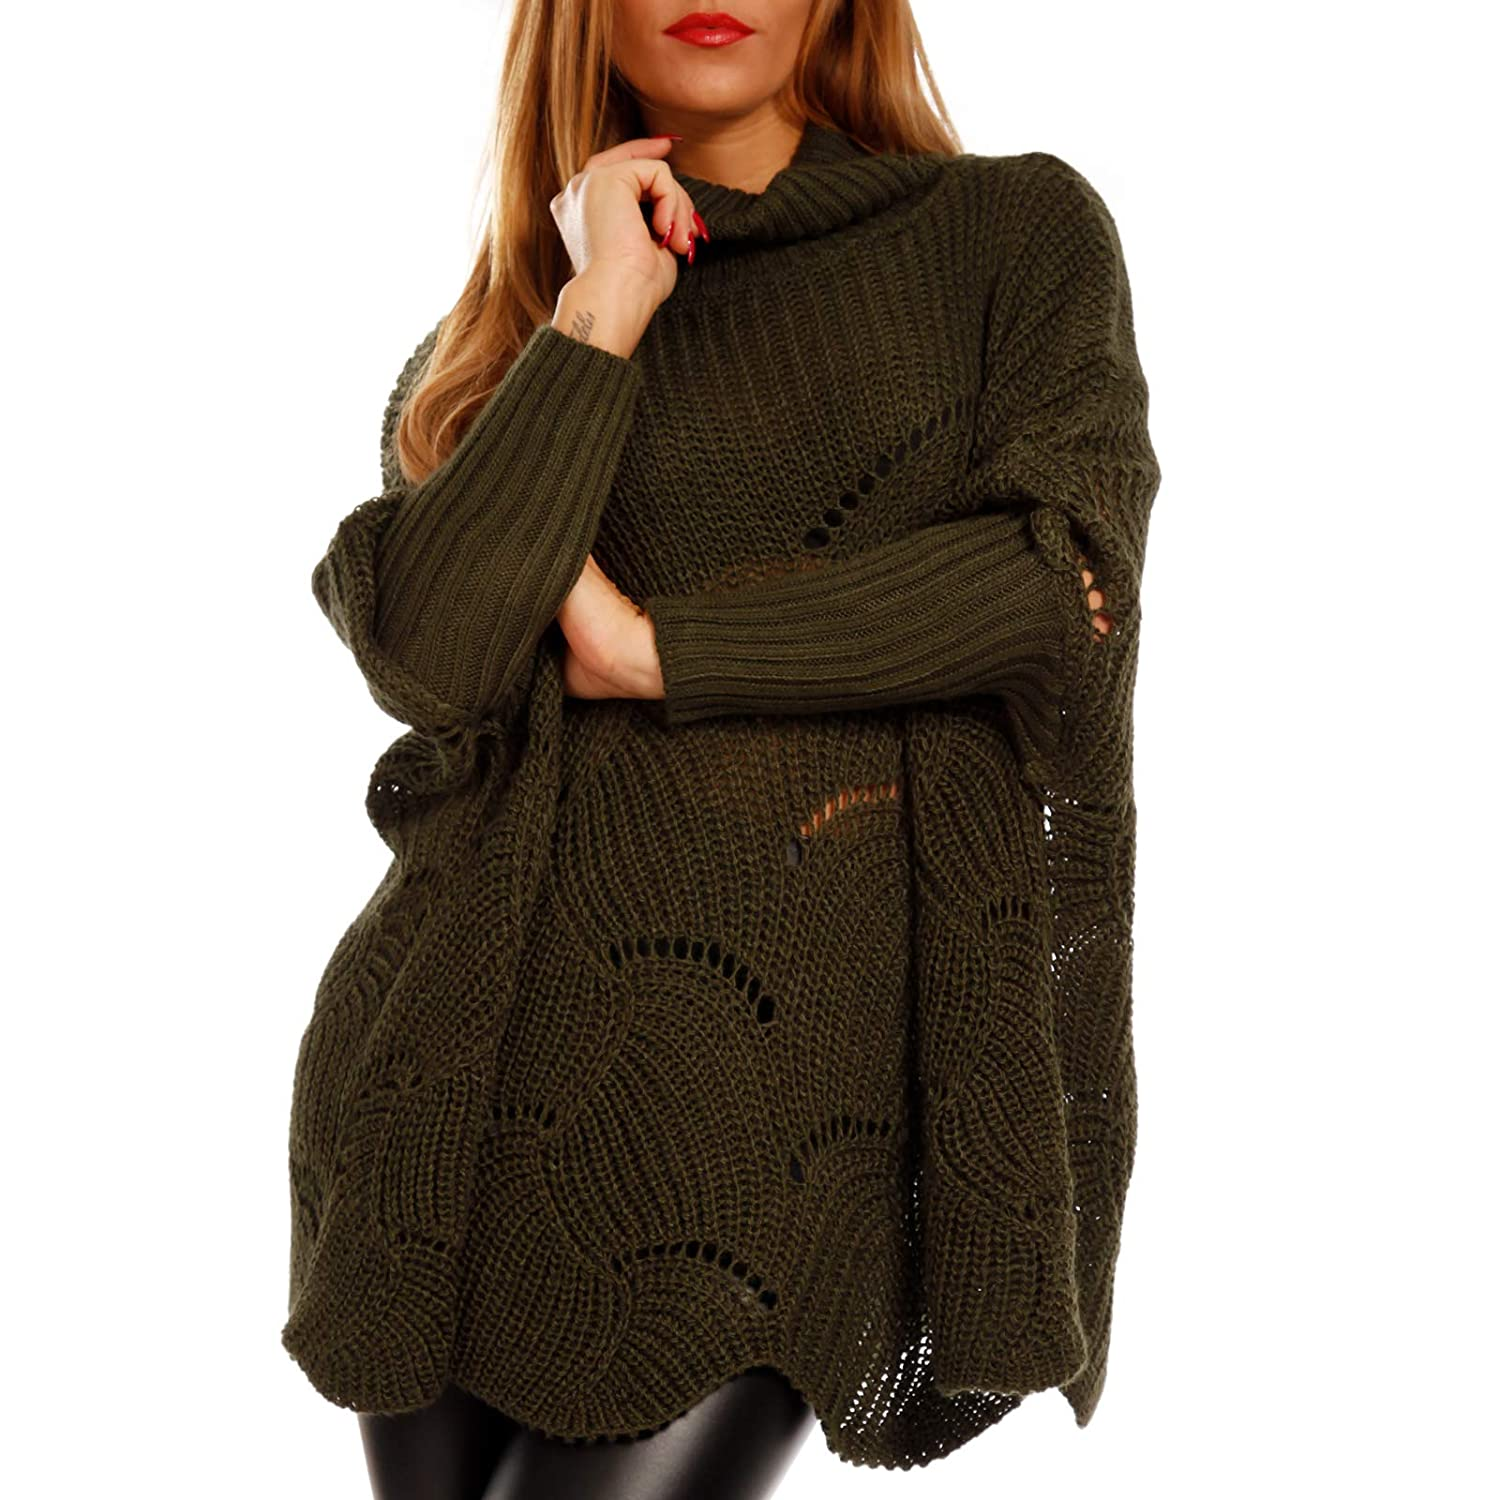 YC Fashion & Style Damen Cape Pullover Ponchopullover XXL Look Plus Size Strickpullover Herbst Winter Made in Italy